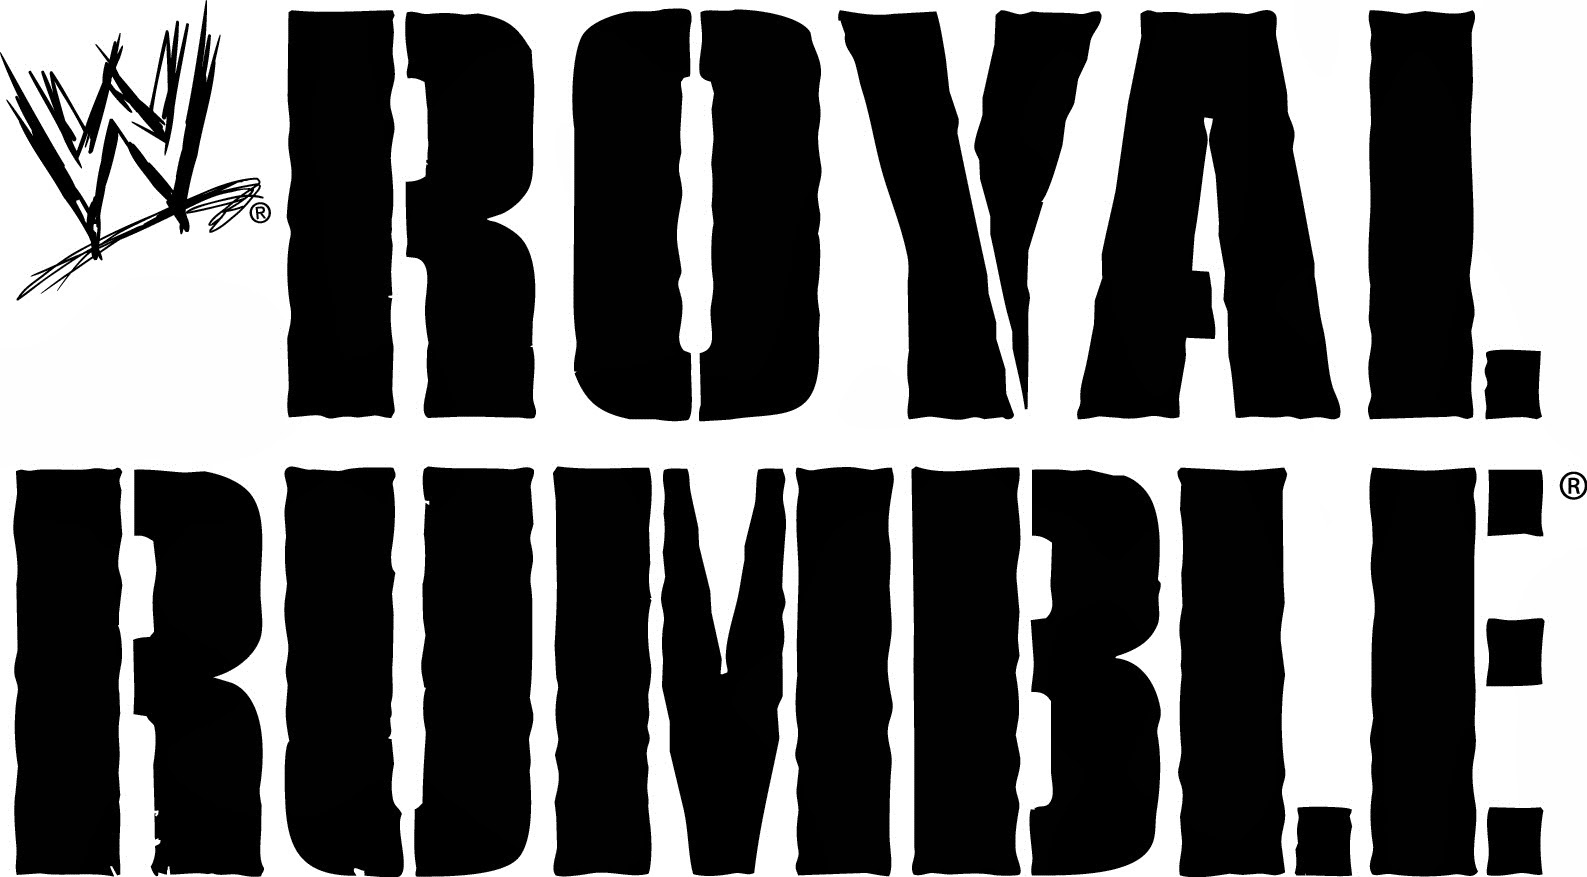 http://www.strengthfighter.com/2014/01/royal-rumble-by-numbers.html